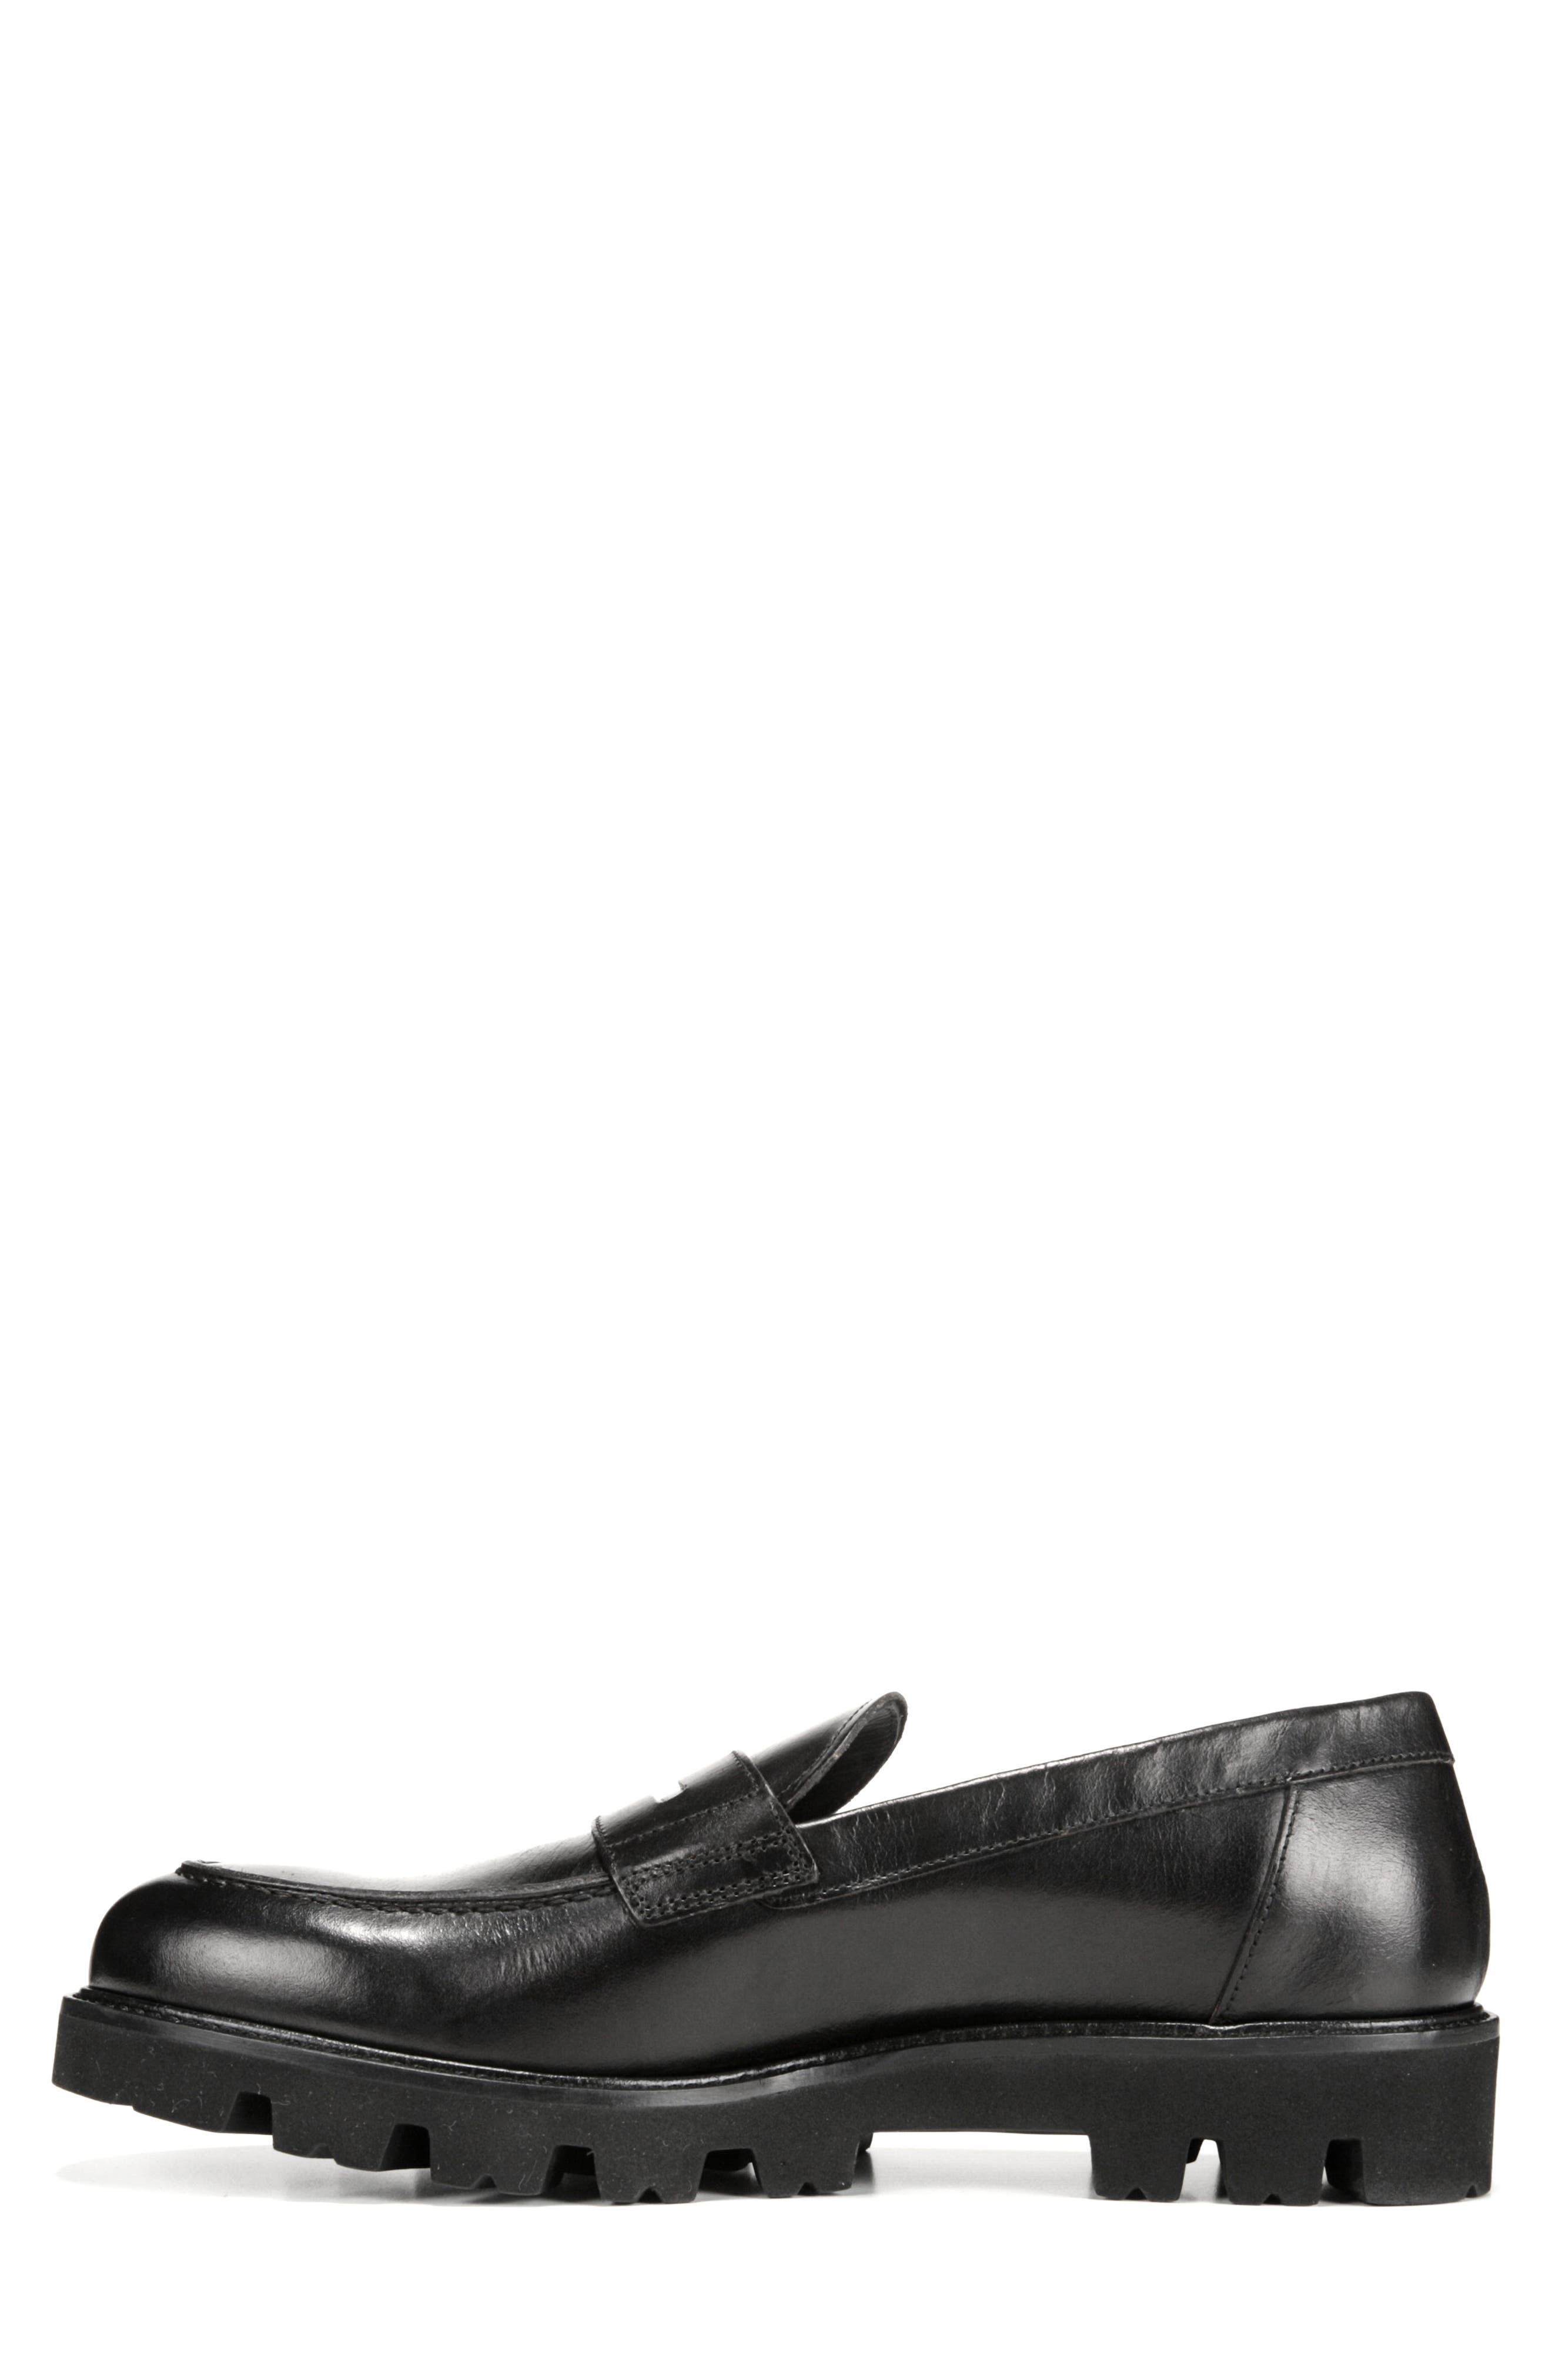 Comrade Loafer,                             Alternate thumbnail 9, color,                             BLACK